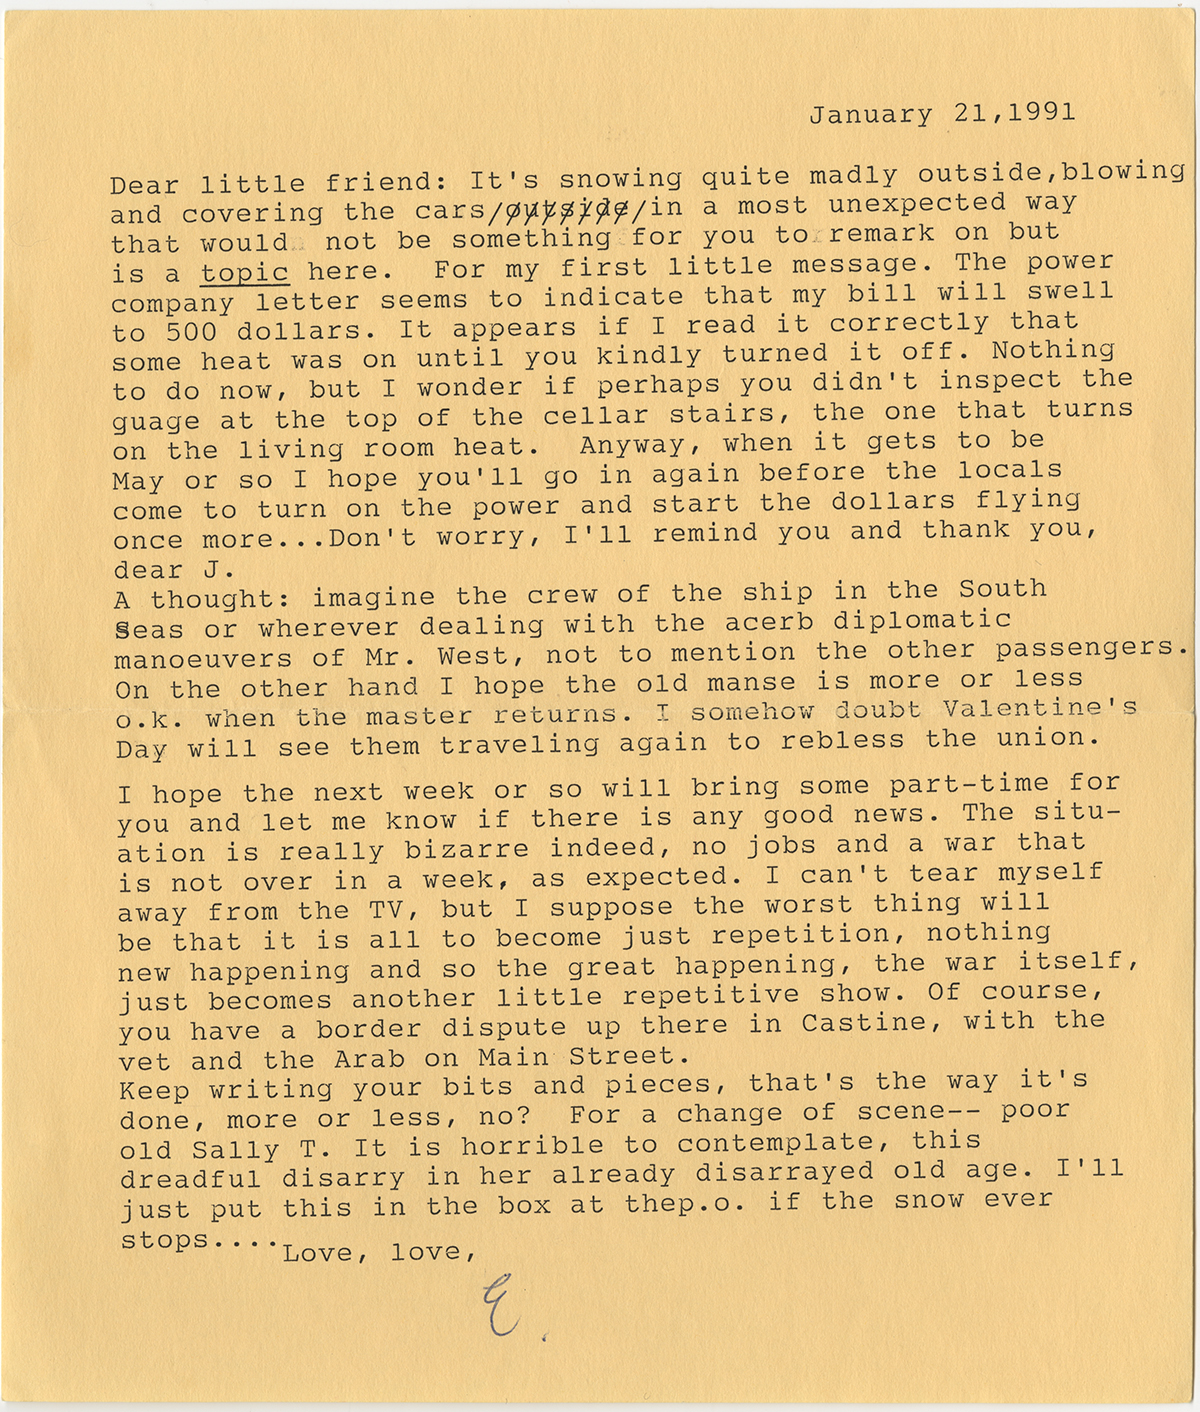 Letter from Elizabeth Hardwick to Jon R. Jewett, dated January 21, 1991. Copyright © 1991 The Elizabeth Hardwick Estate, used by permission of The Wylie Agency LLC.